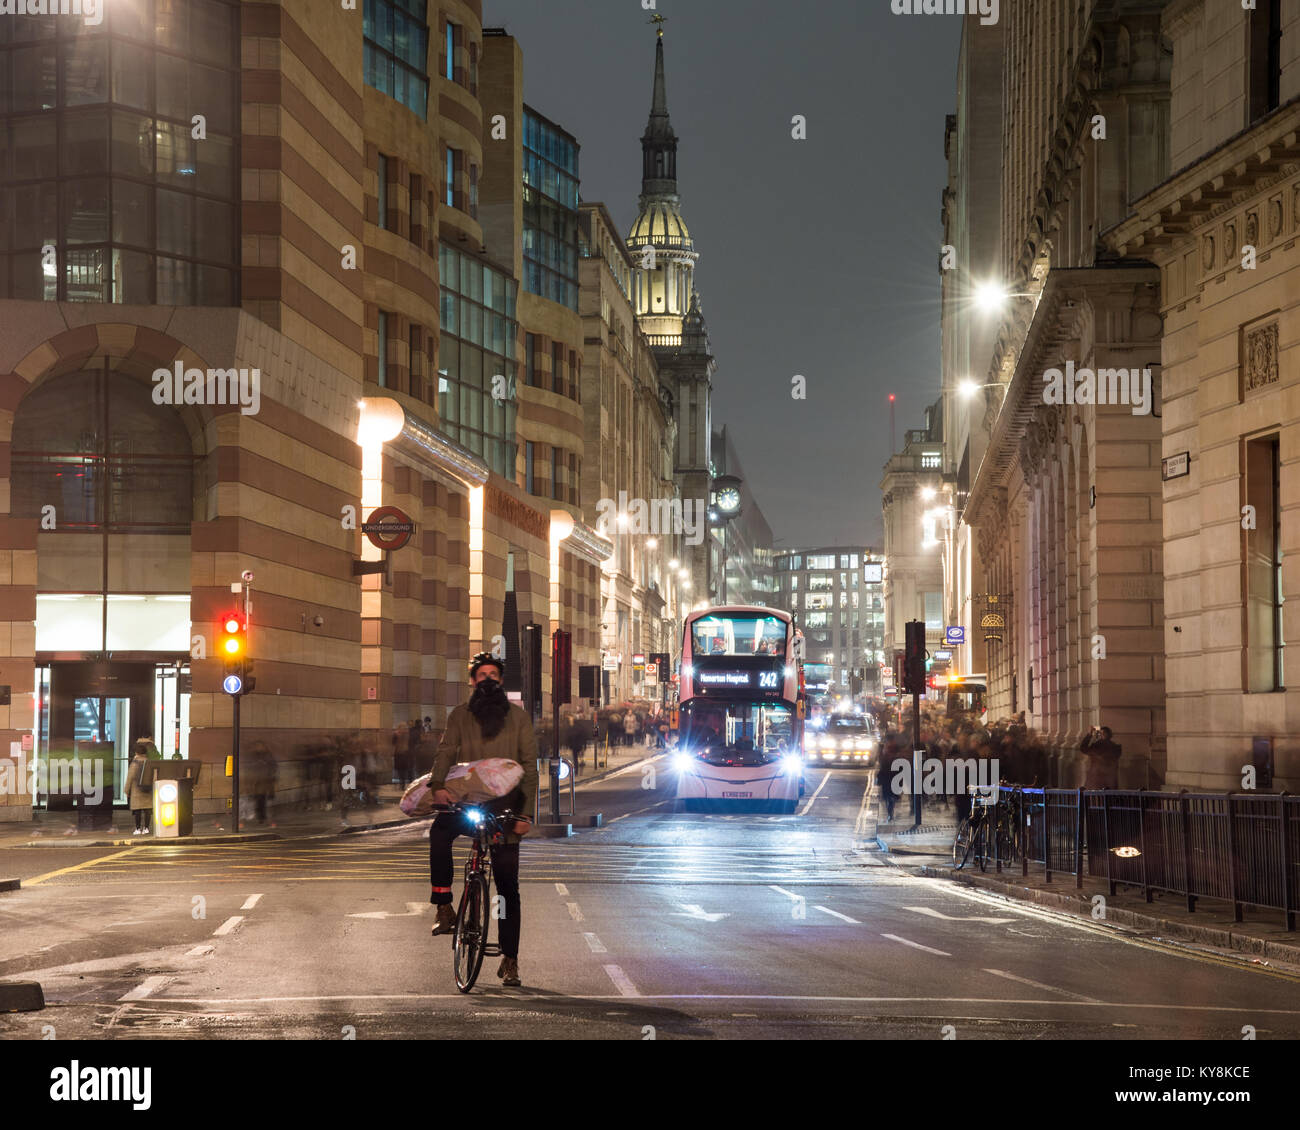 London, England, UK - January 11, 2018: Pedestrians walk past cyclists and buses waiting at Bank Junction in the - Stock Image